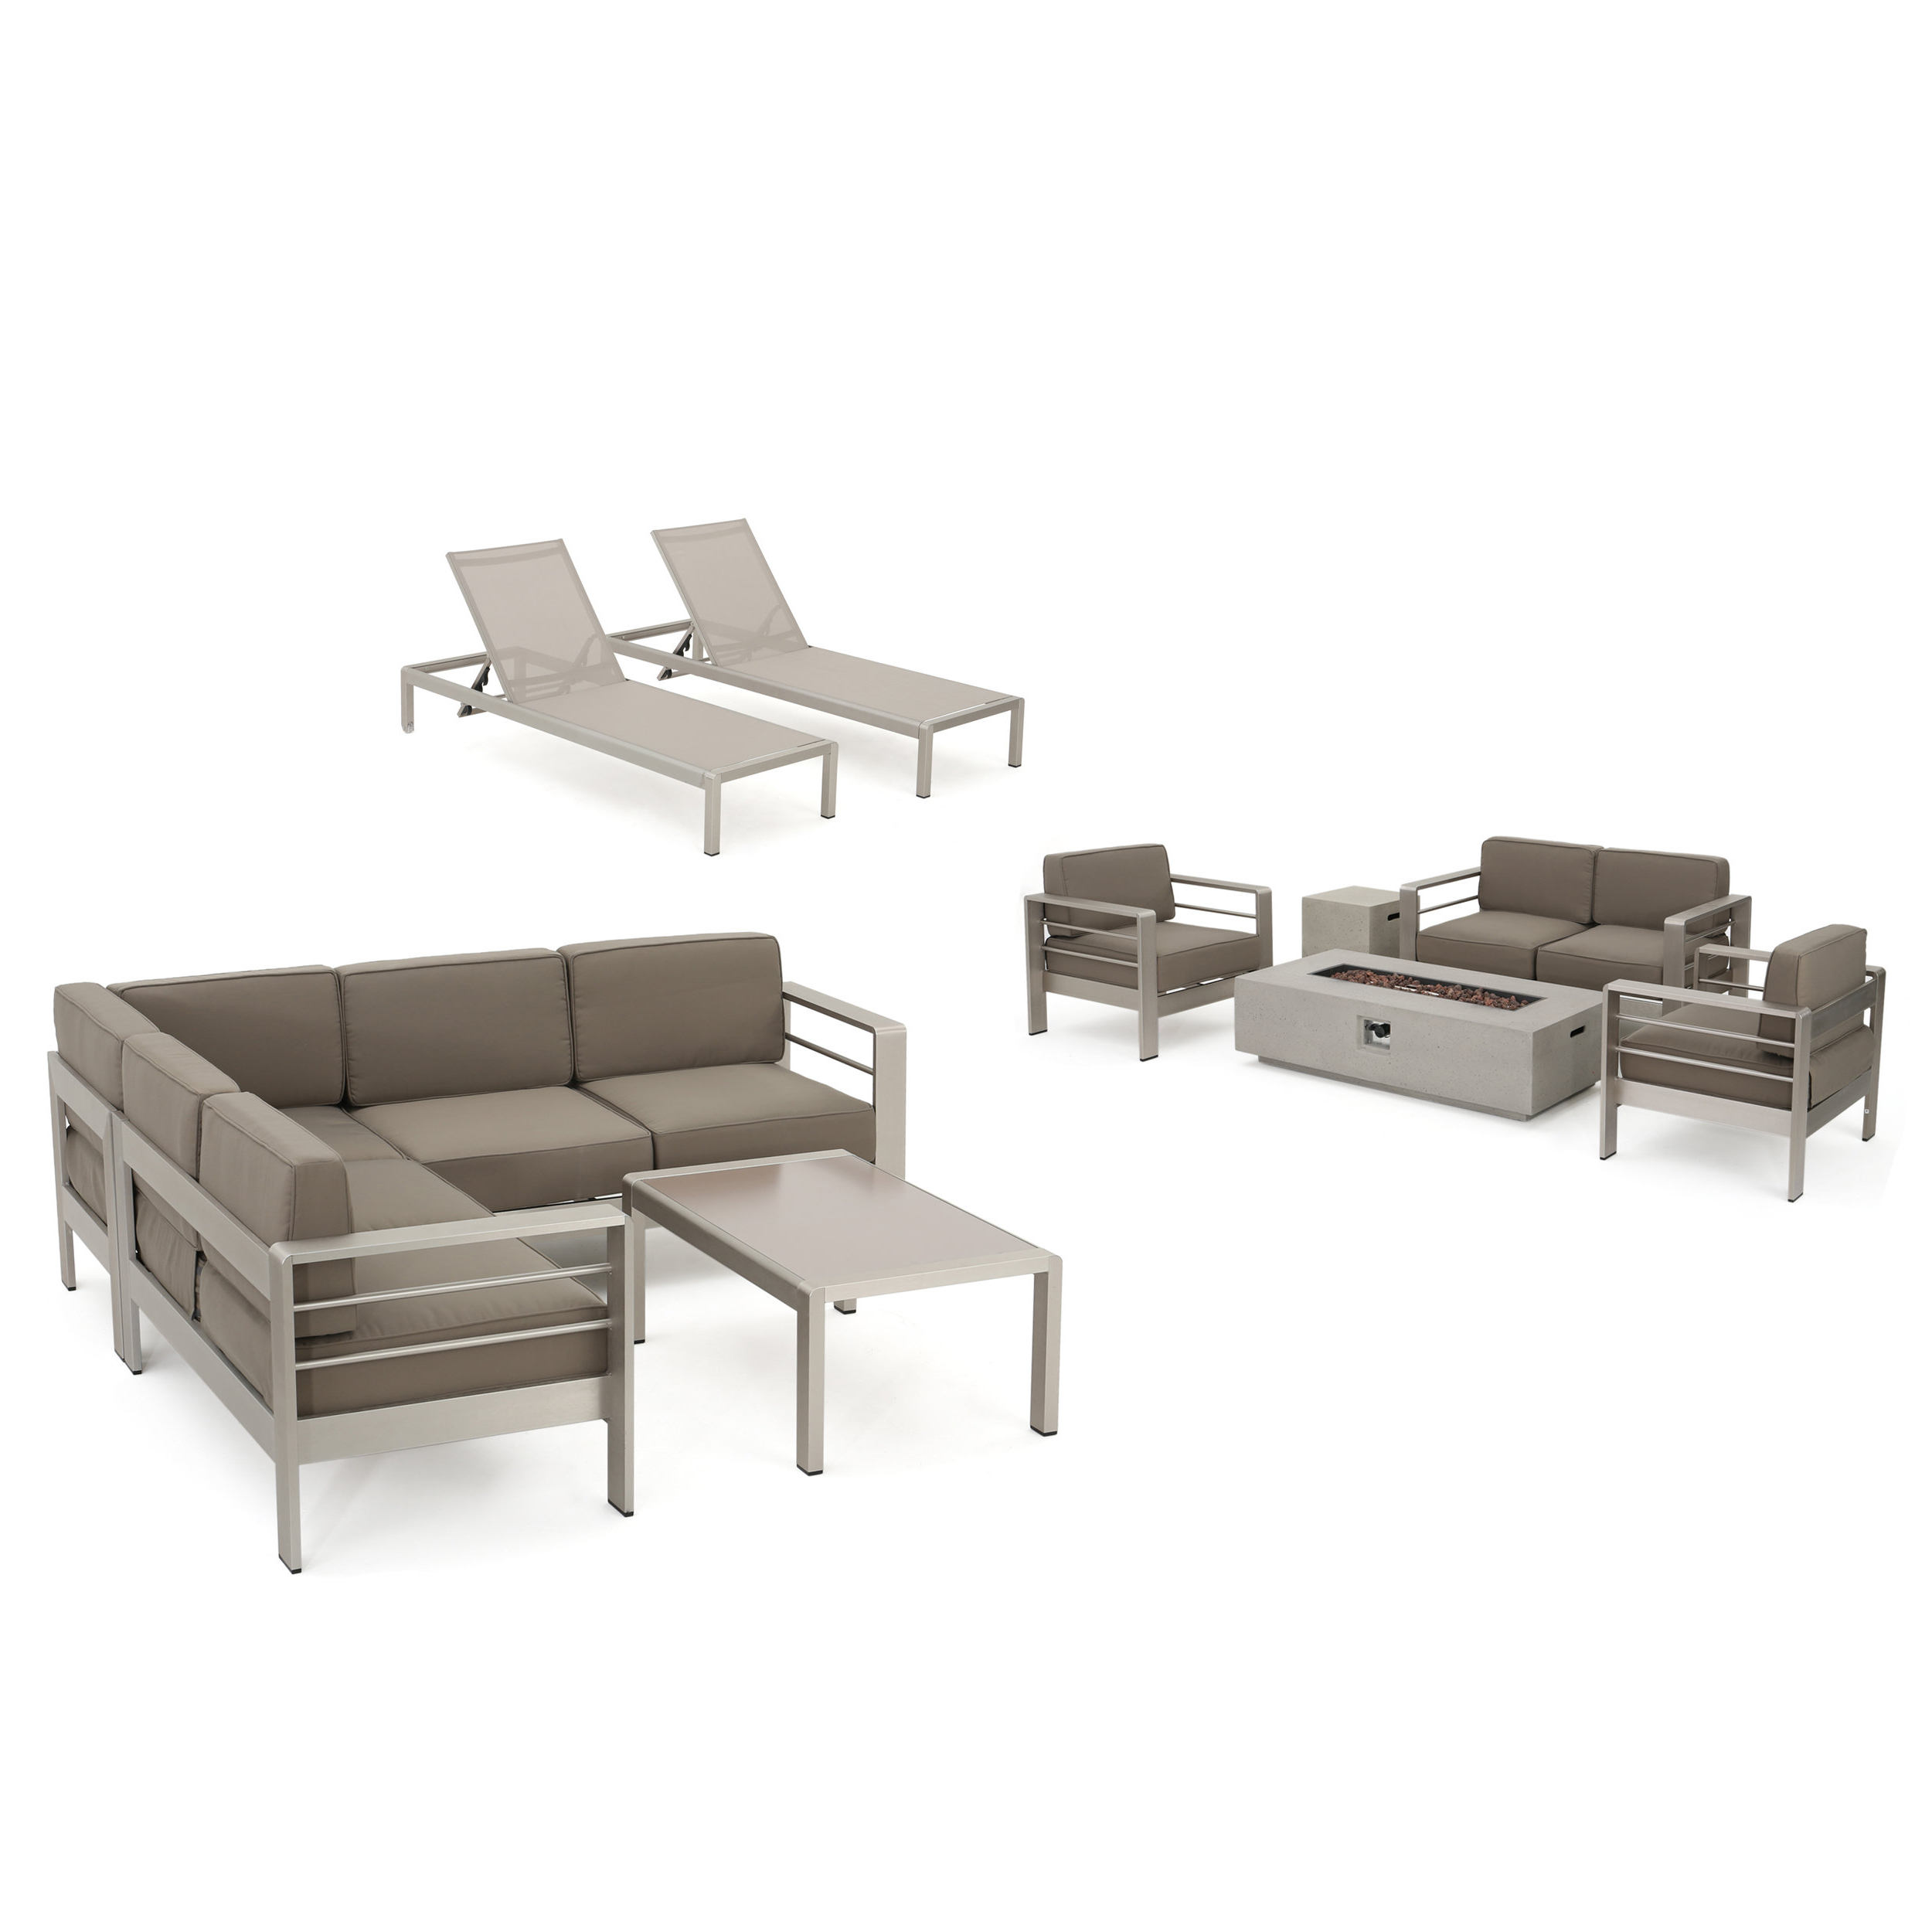 Preferred Royalston Patio Sofas With Cushions In Royalston 10 Piece Sectional Set With Cushions (View 5 of 20)